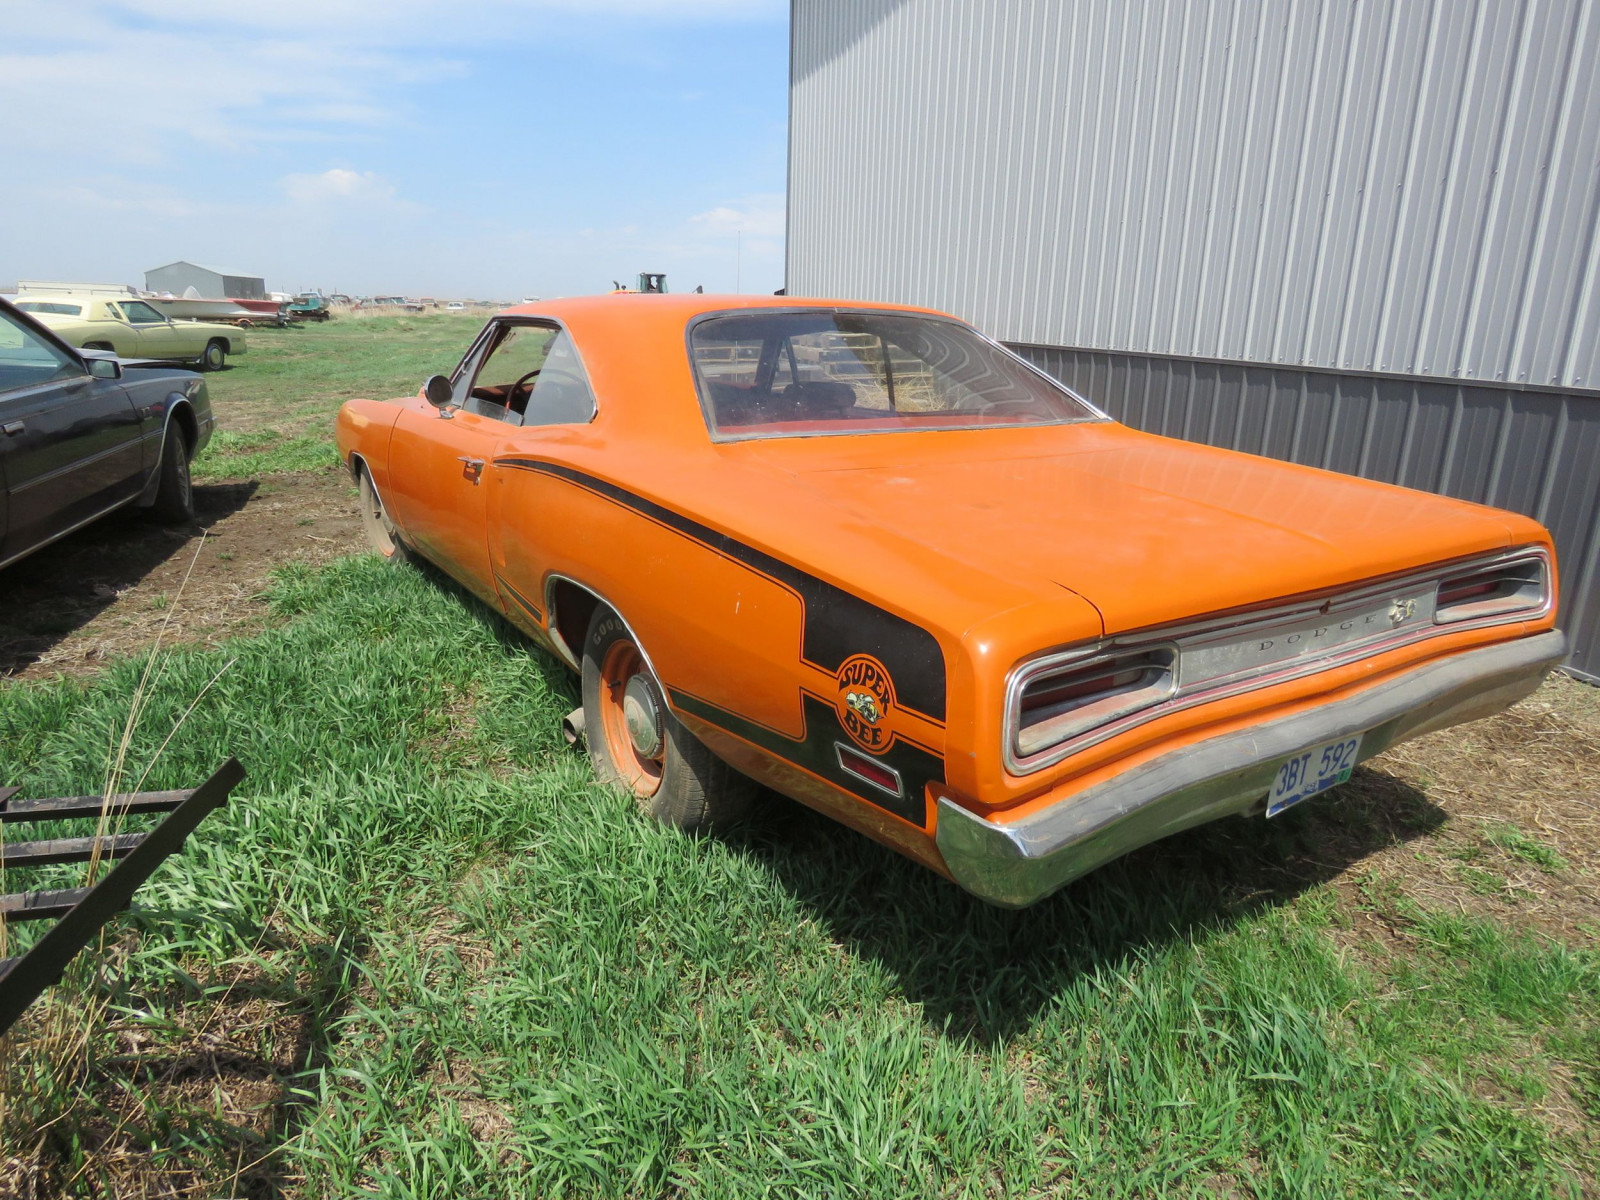 1970 Dodge Super Bee 440 6 Pack Coupe - Image 10